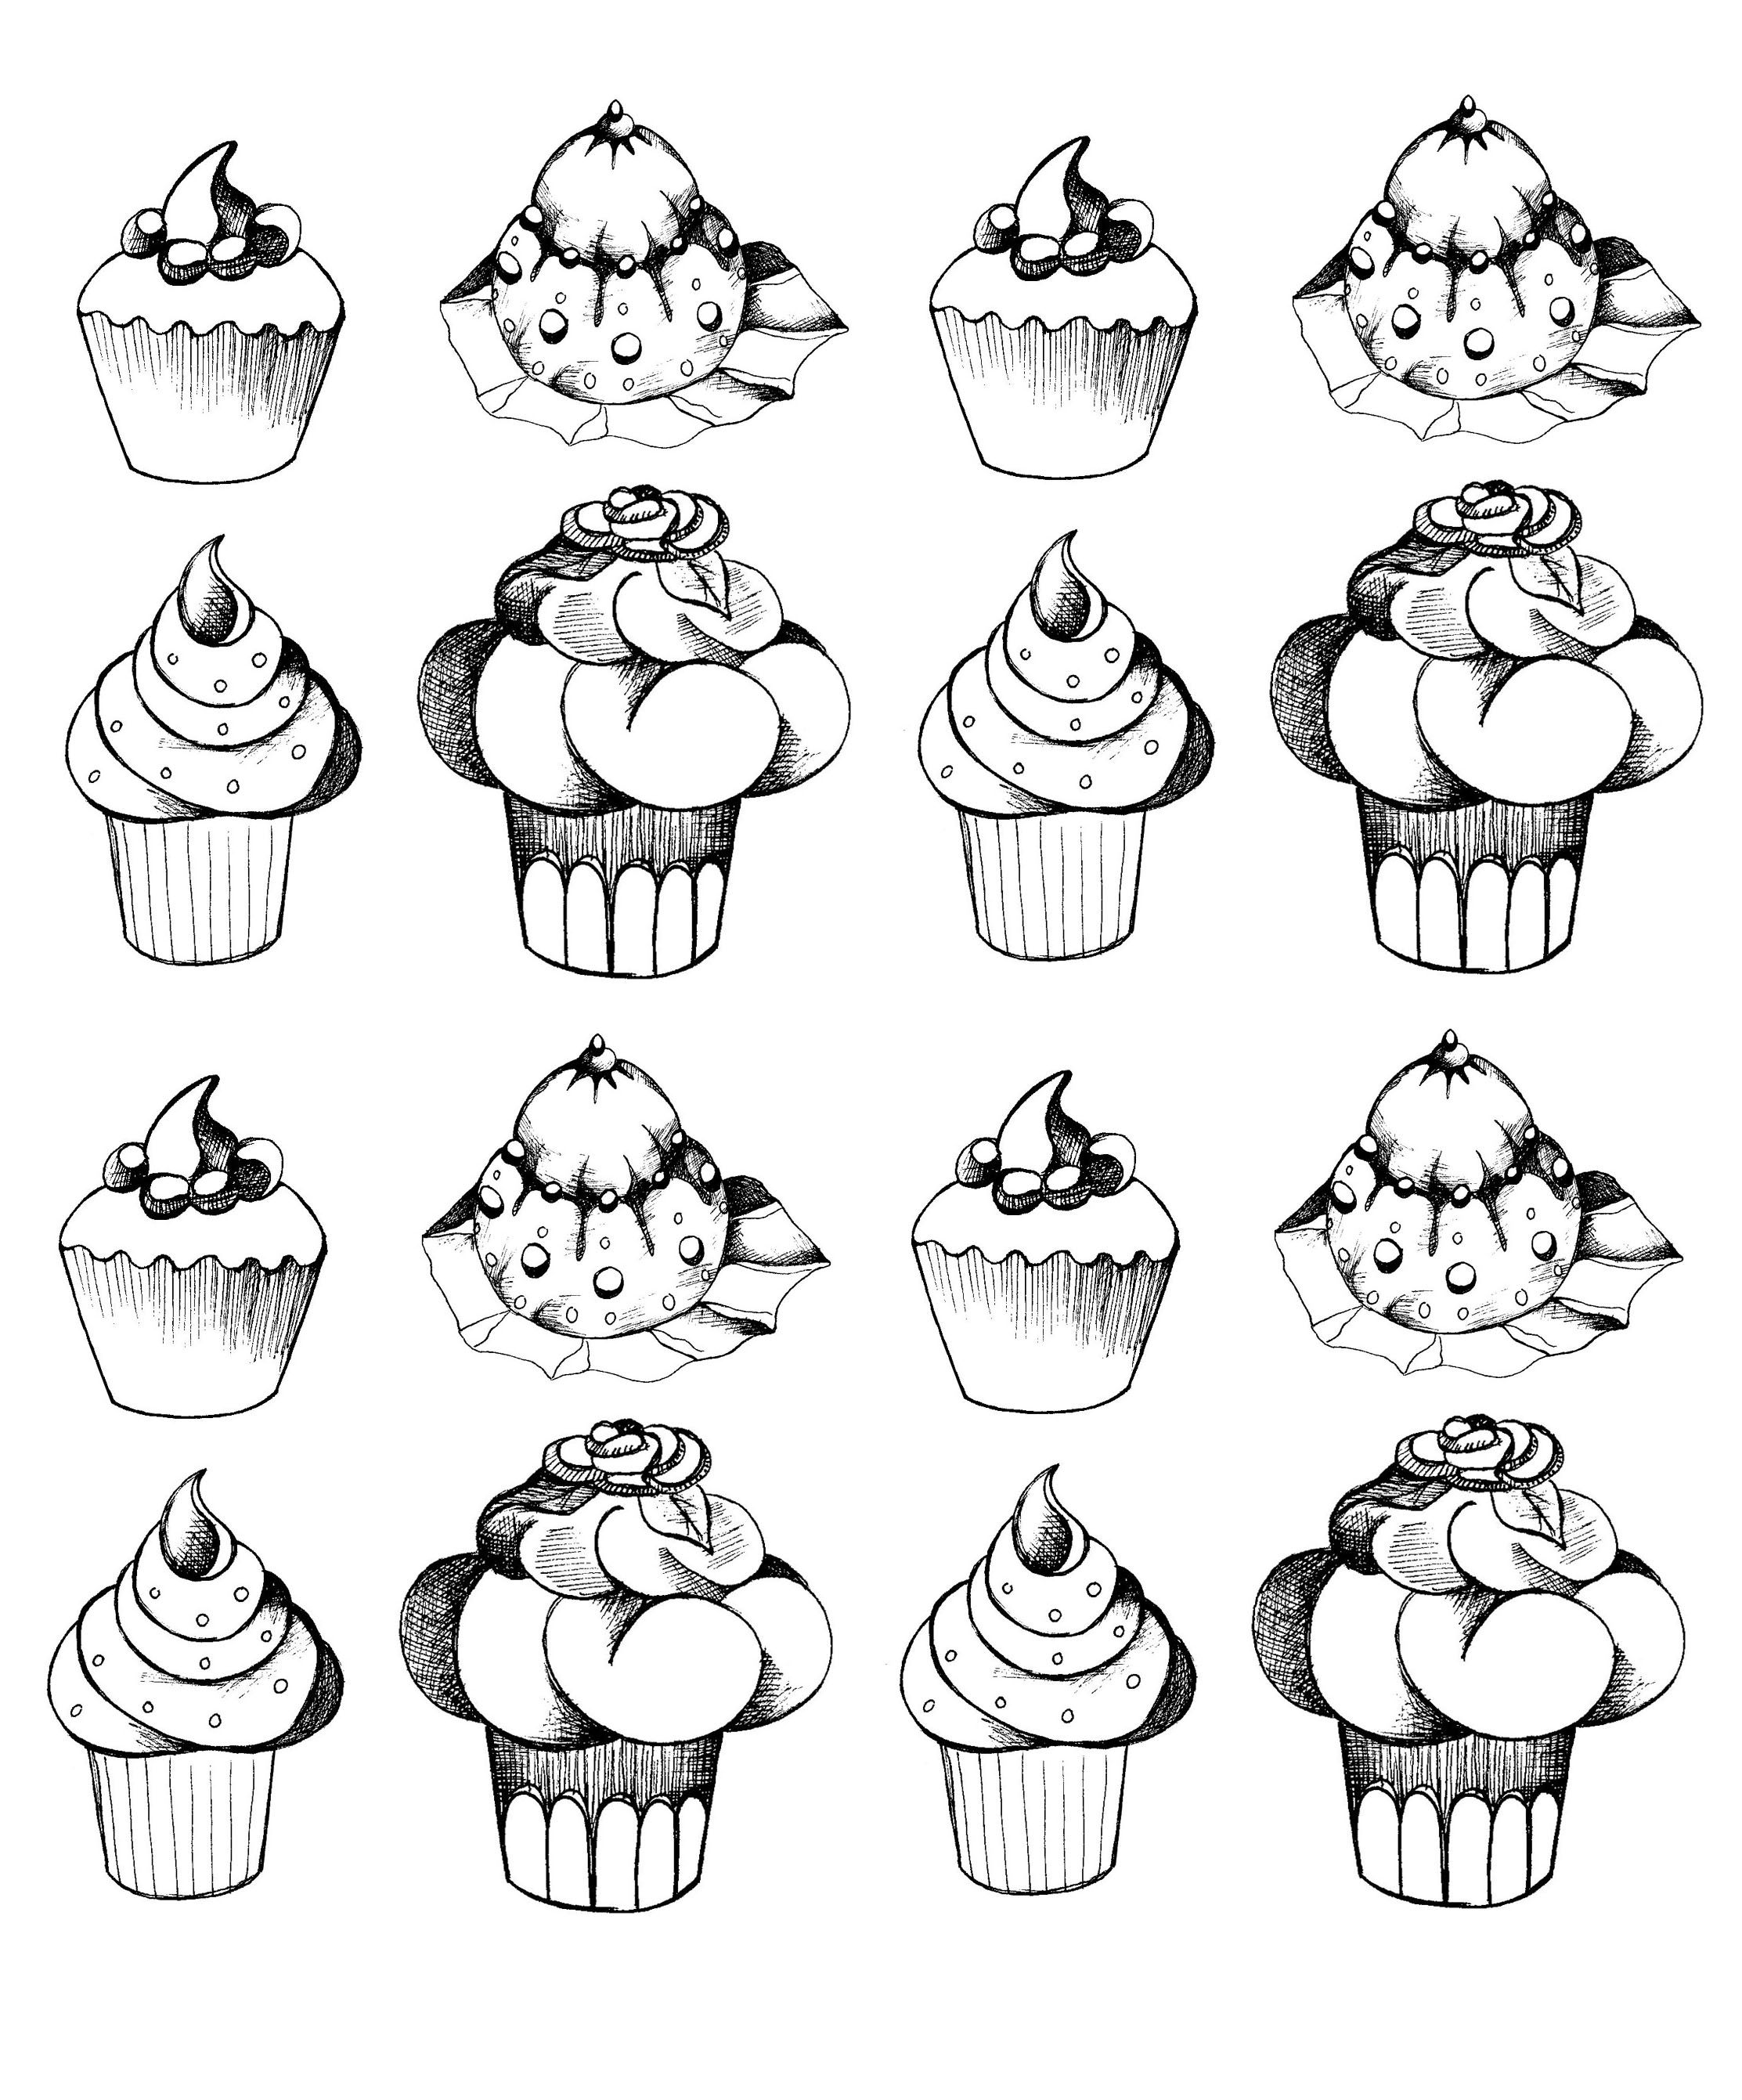 cupcakes oldstyle Cup Cakes Coloring pages for adults JustColor